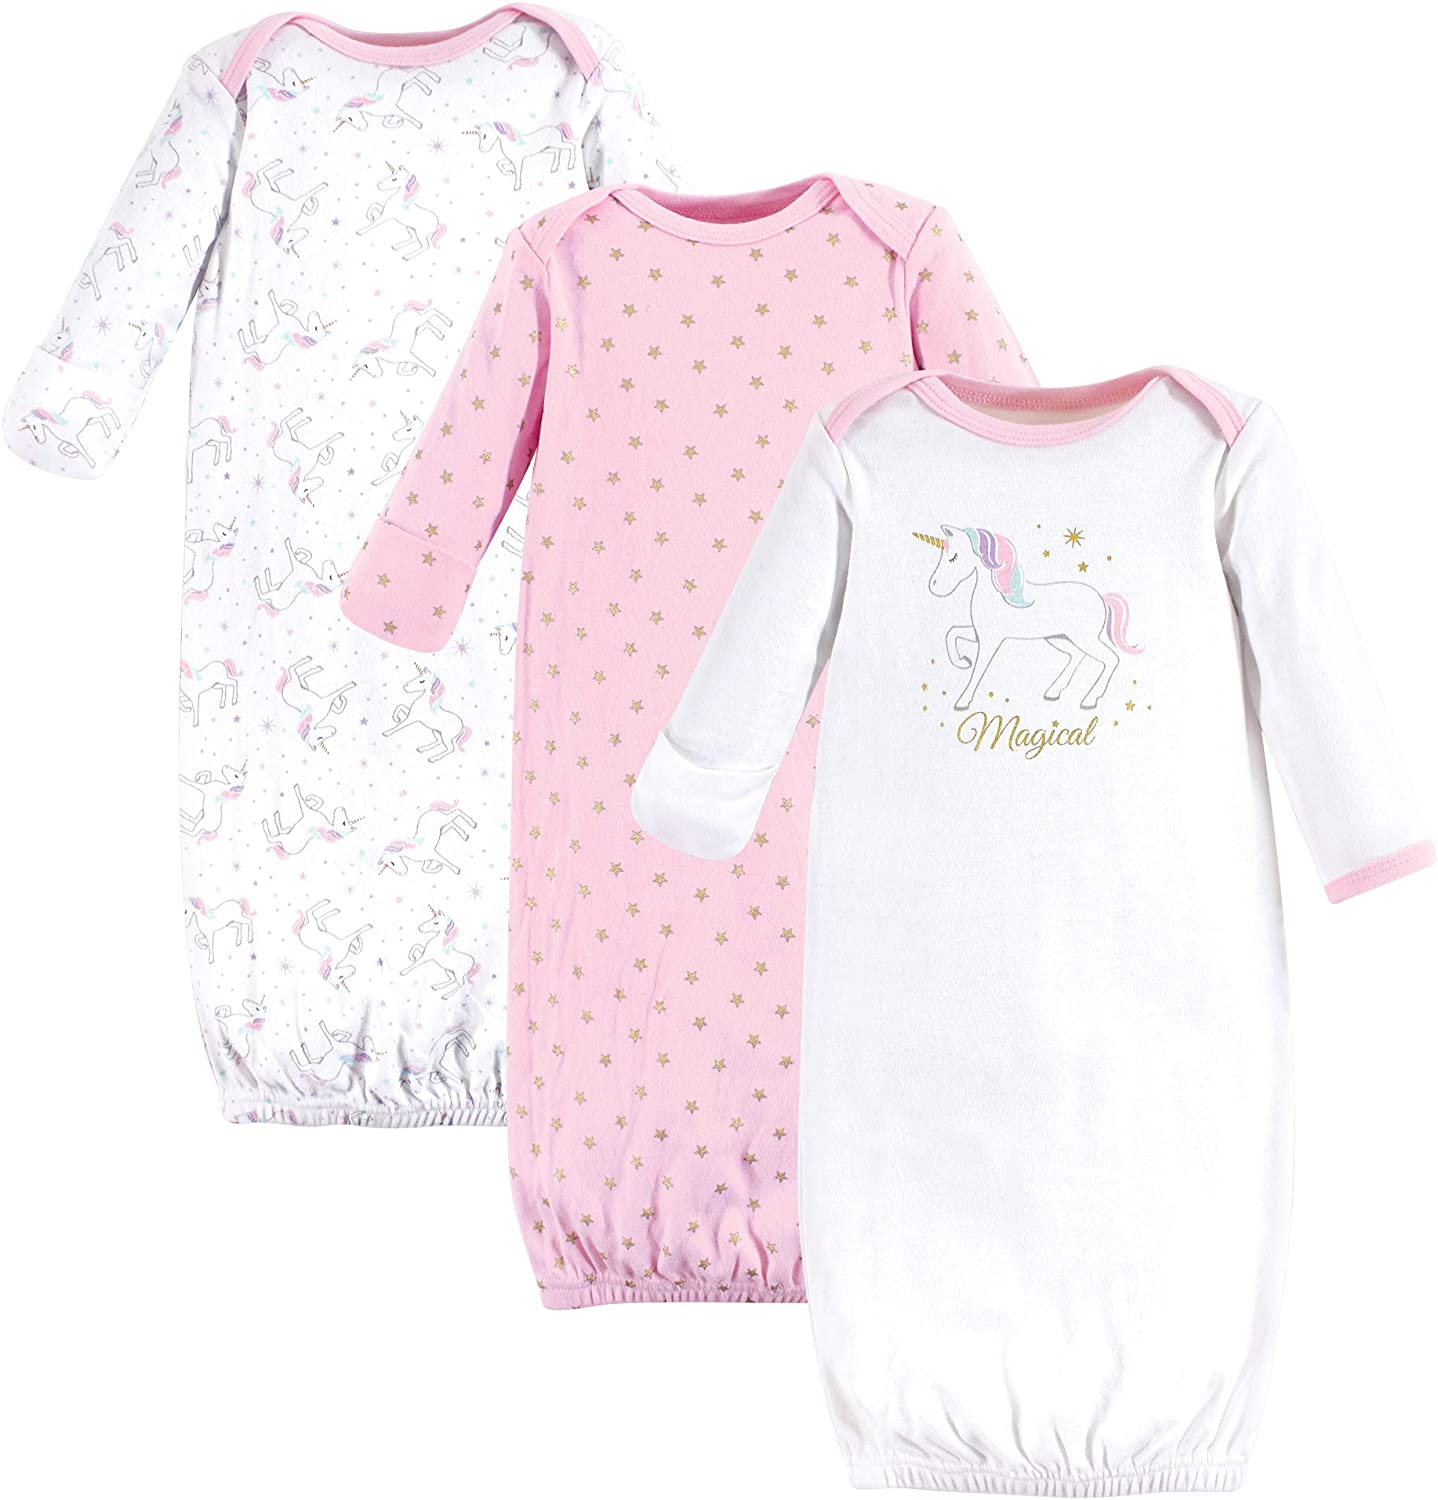 Hudson baby Cotton Gowns Nightgown